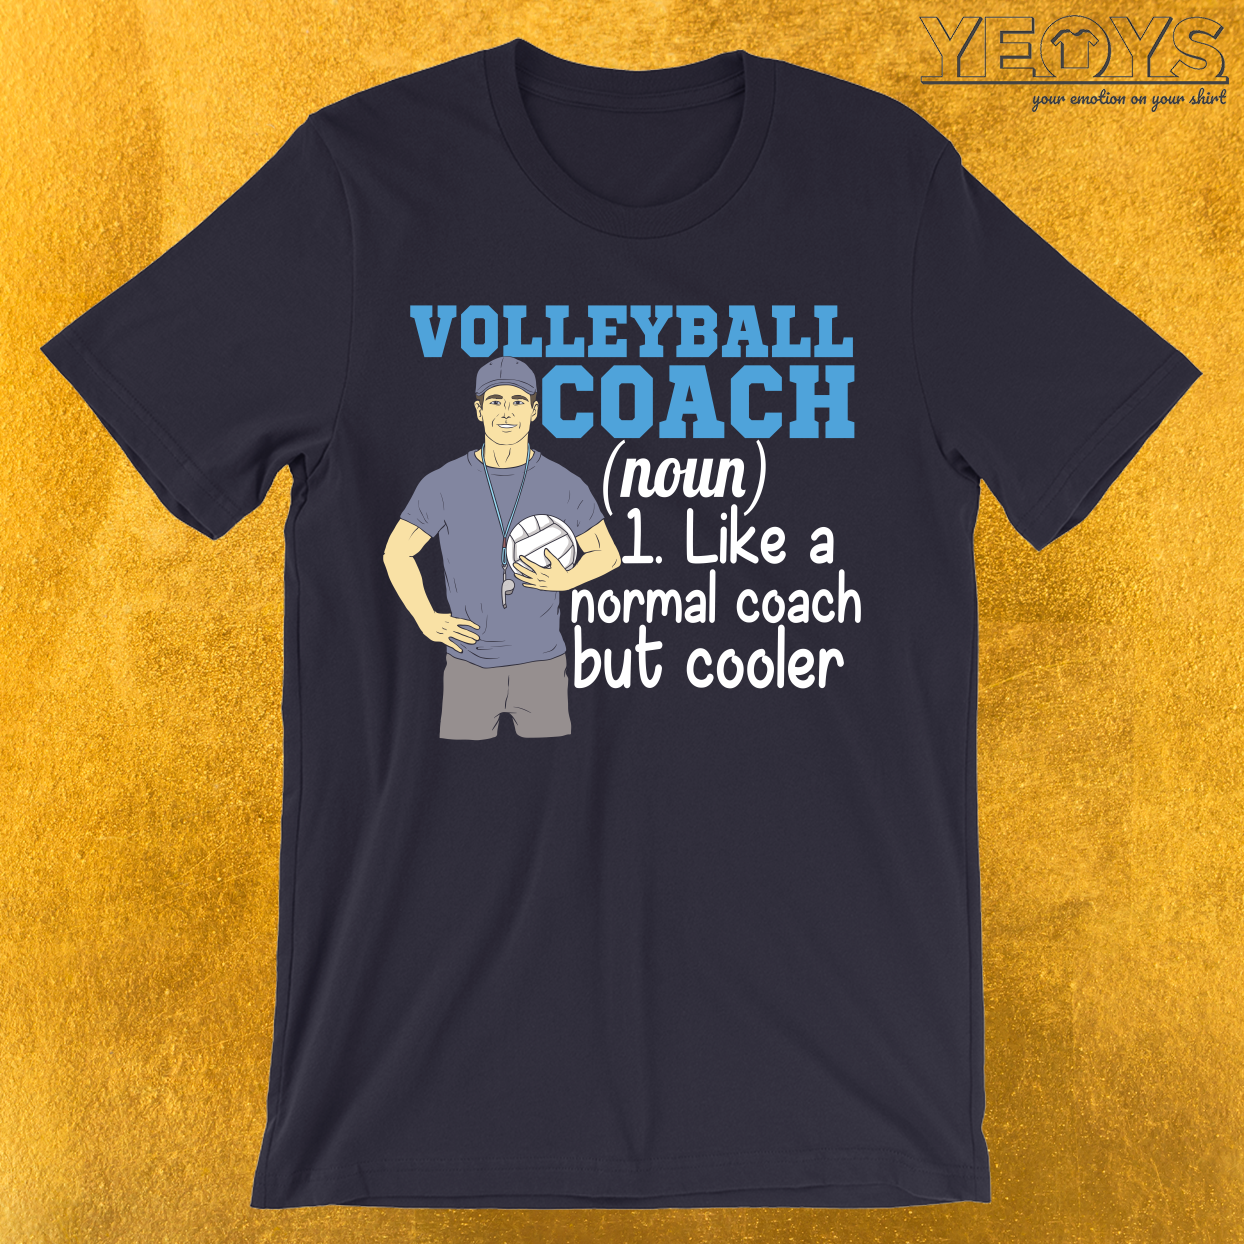 Volleyball Coach Like Normal But Cooler T Shirt Sport And Volleyball Novelty This Cool Volleyball Coaching Volleyball Funny Sports Quotes Cool T Shirts